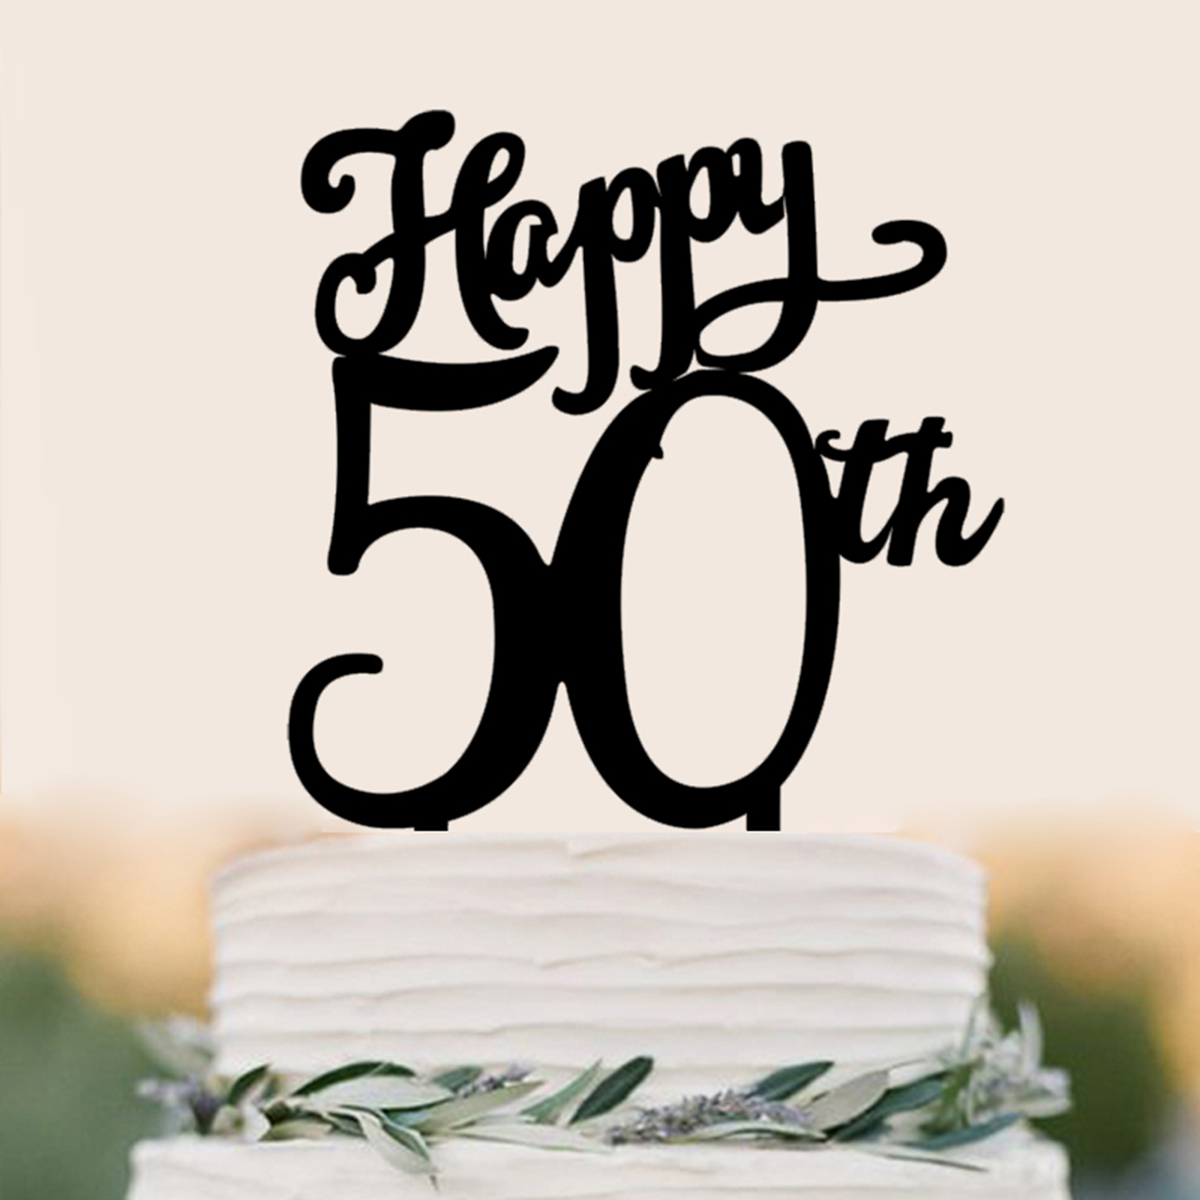 Incredible Happy 50Th Birthday Cake Topper Acrylic 50Th Cake Decoration Party Funny Birthday Cards Online Hetedamsfinfo